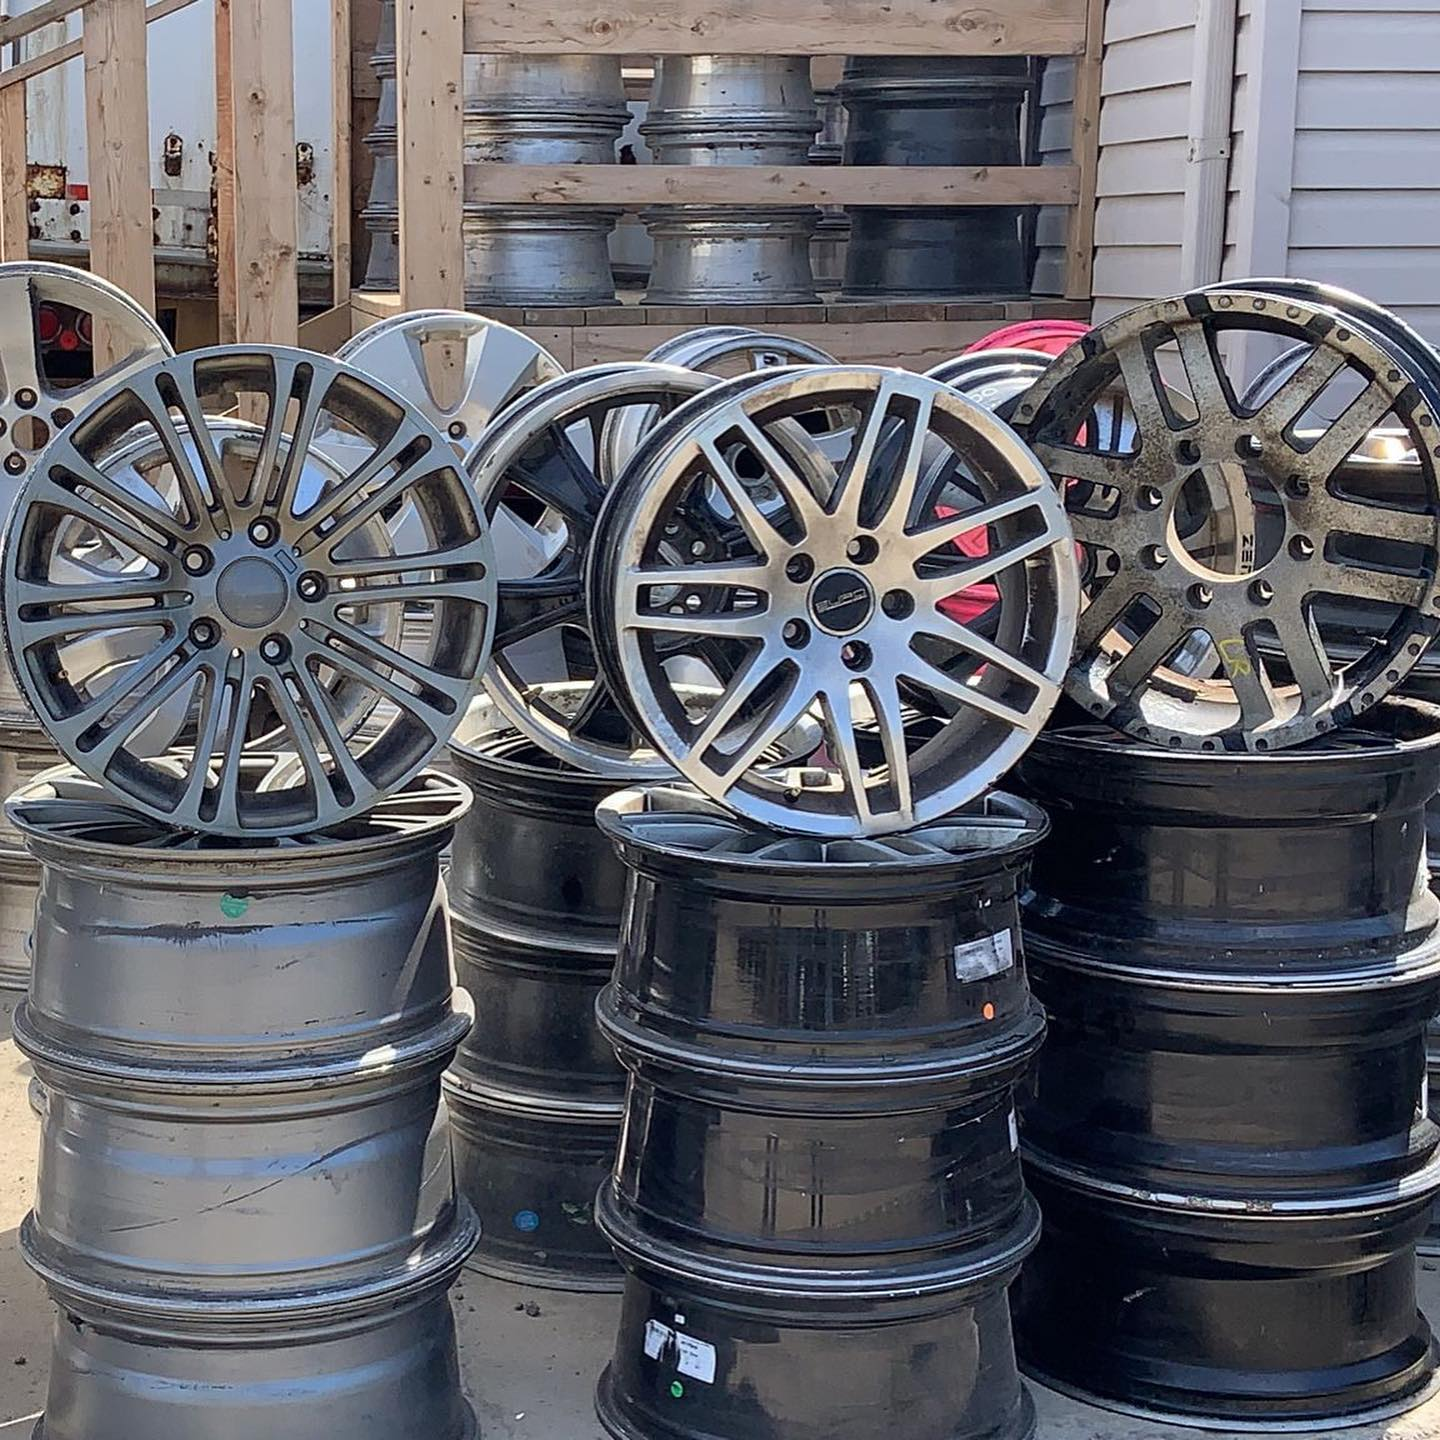 Assorted Rim sets at the Tire Shop.